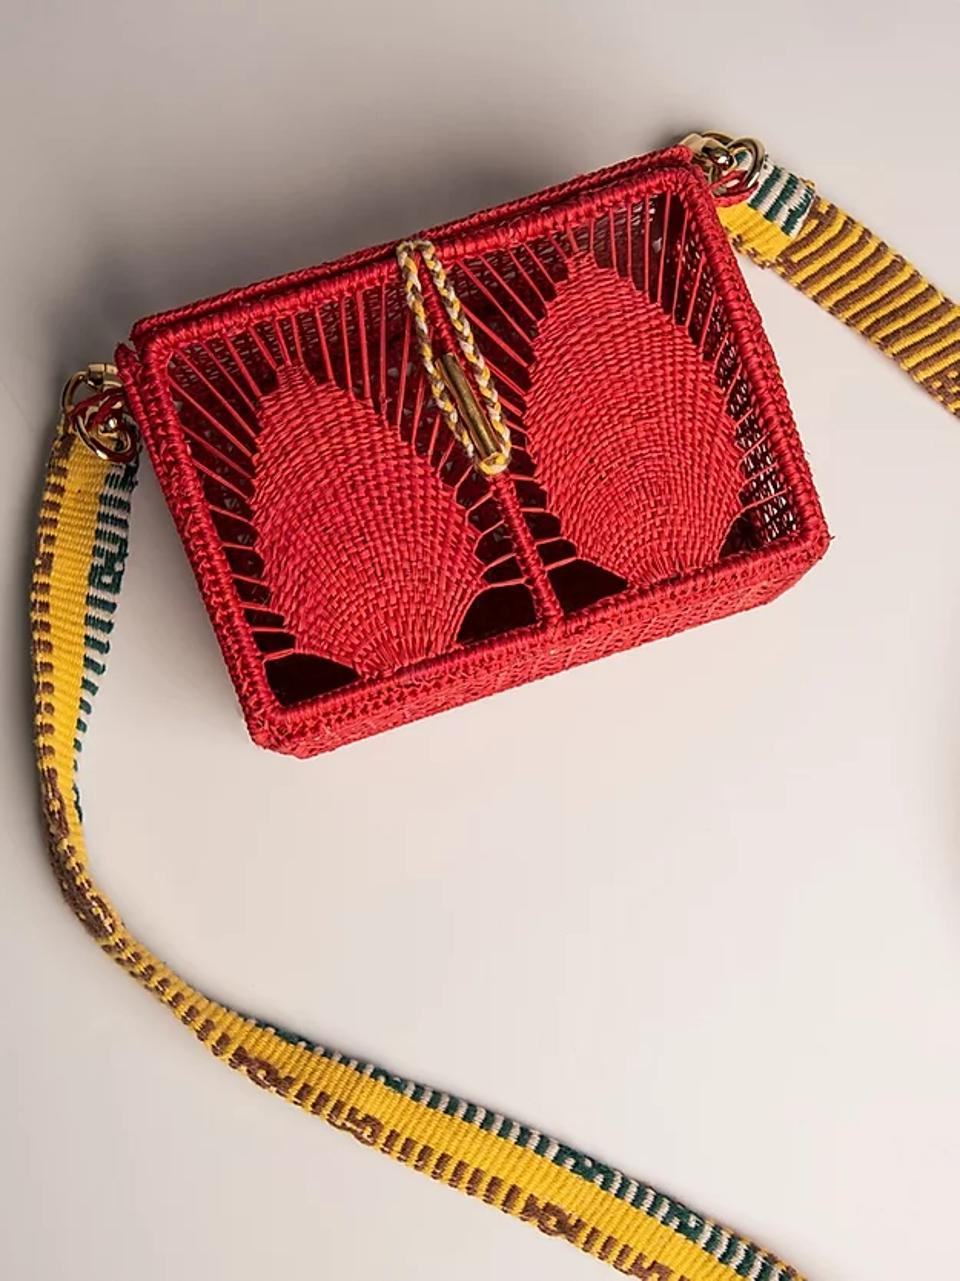 Dress to impress with this statement purse that has been hand-made by talented Colombian artisans.